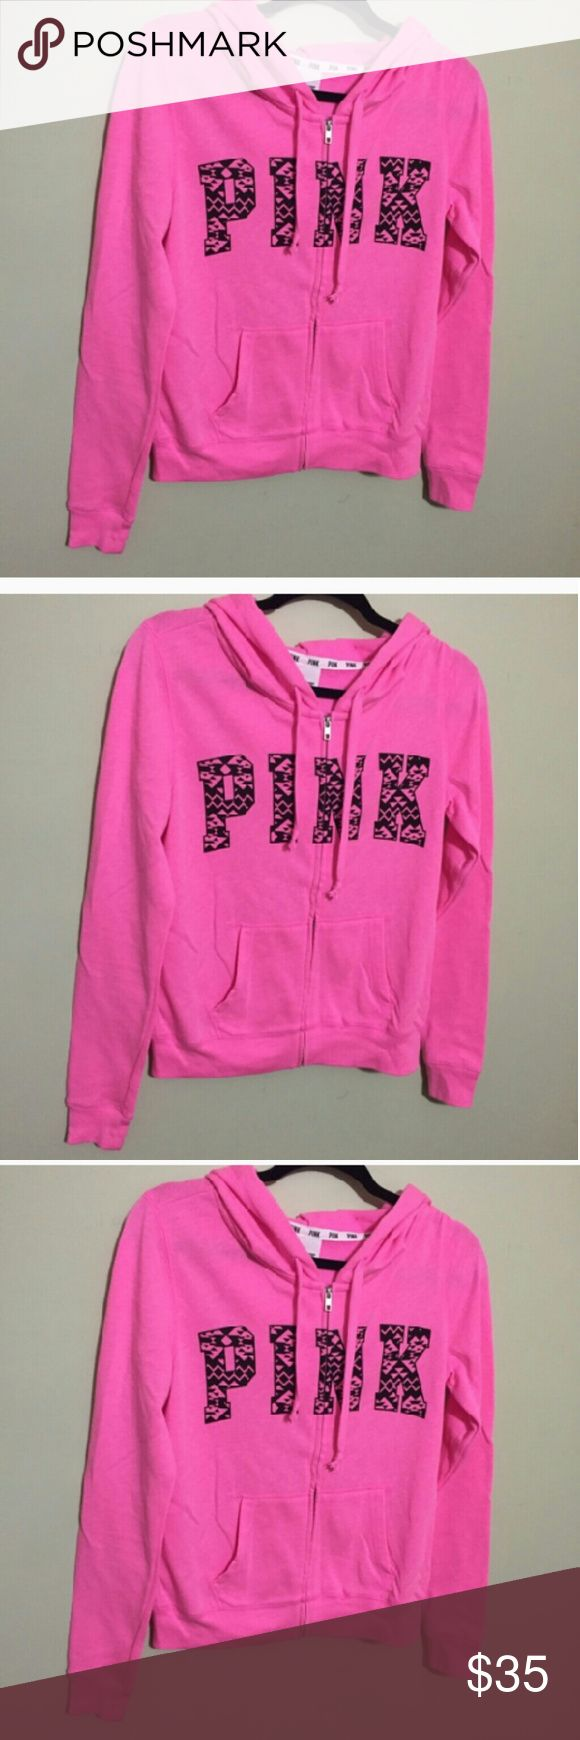 NWOT Victoria secret pink Aztec zip up hoodie NWOT beautiful brand new Victoria secret Aztec zip up hoodie size small women's, pink logo design on front of sweater in black Aztec letters. Never worn!New!Selling this designer brand for a great price!New! Victoria secret  Sweaters